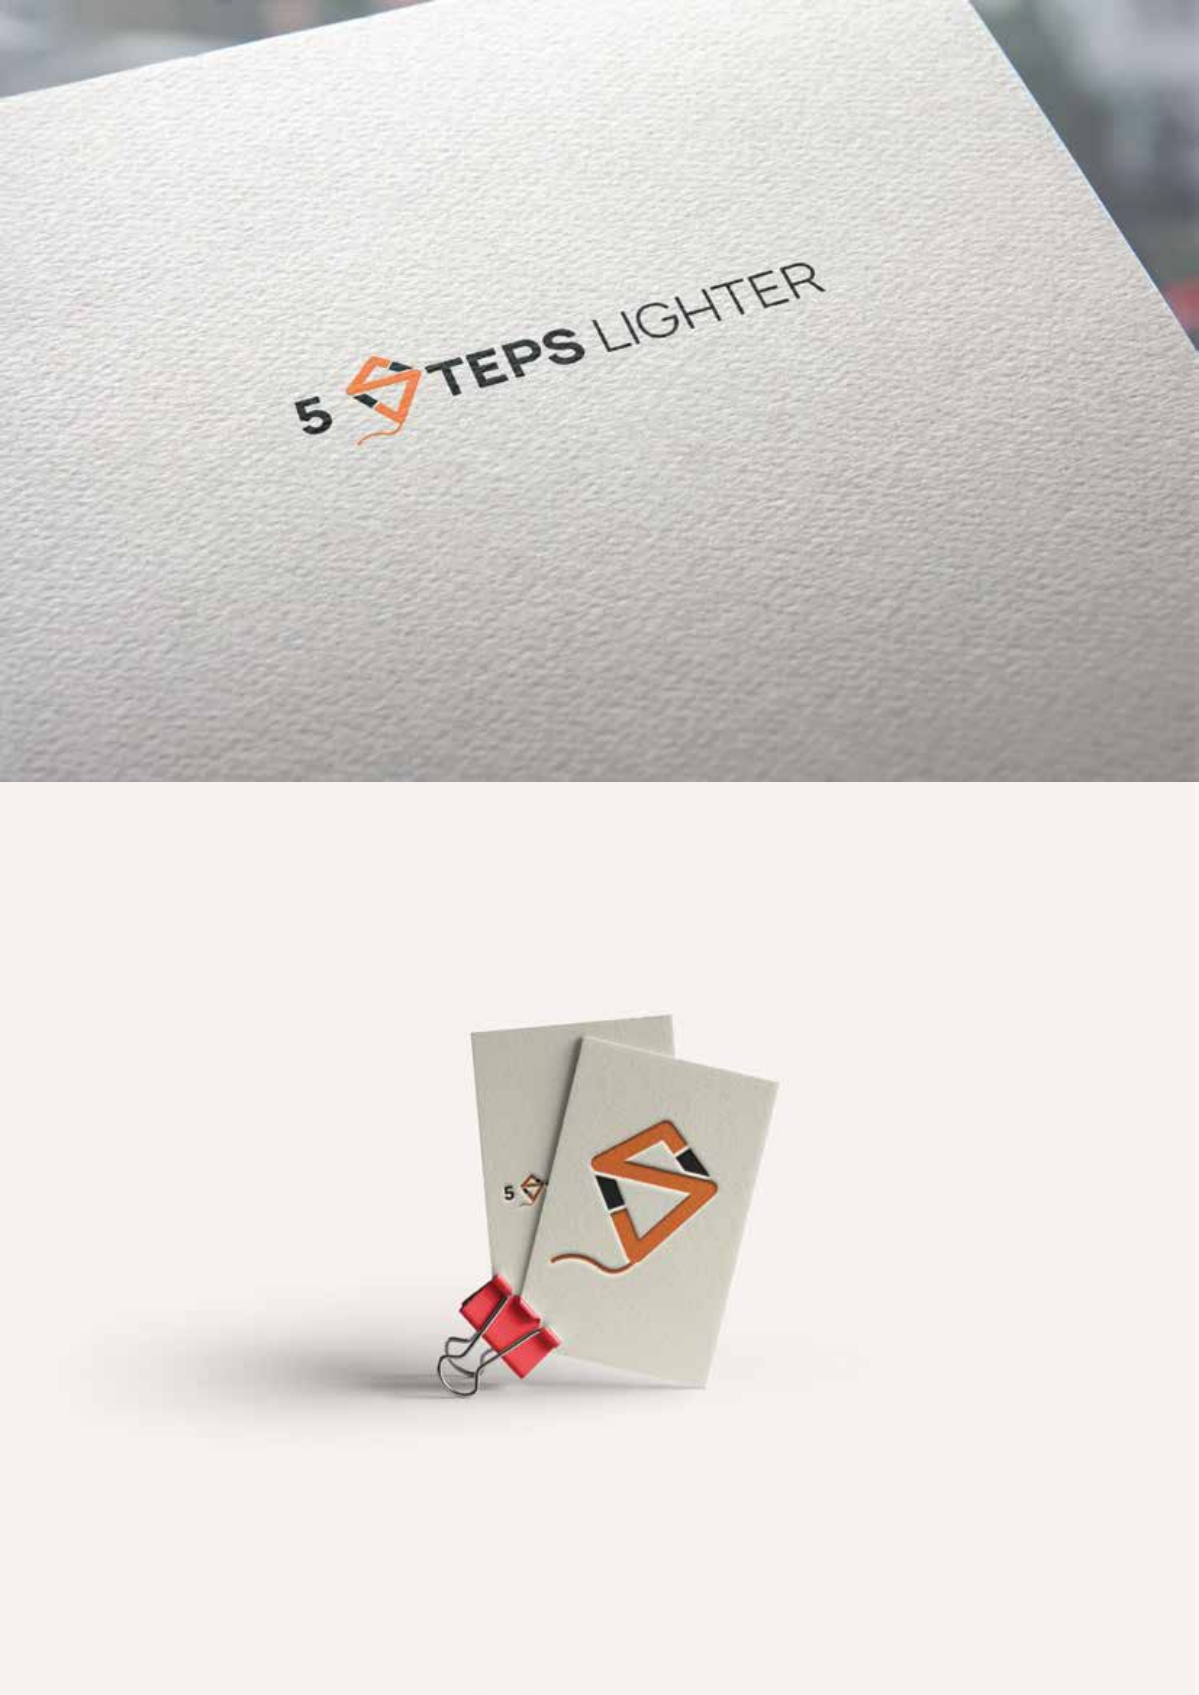 Logo and online branding material for weight loss business